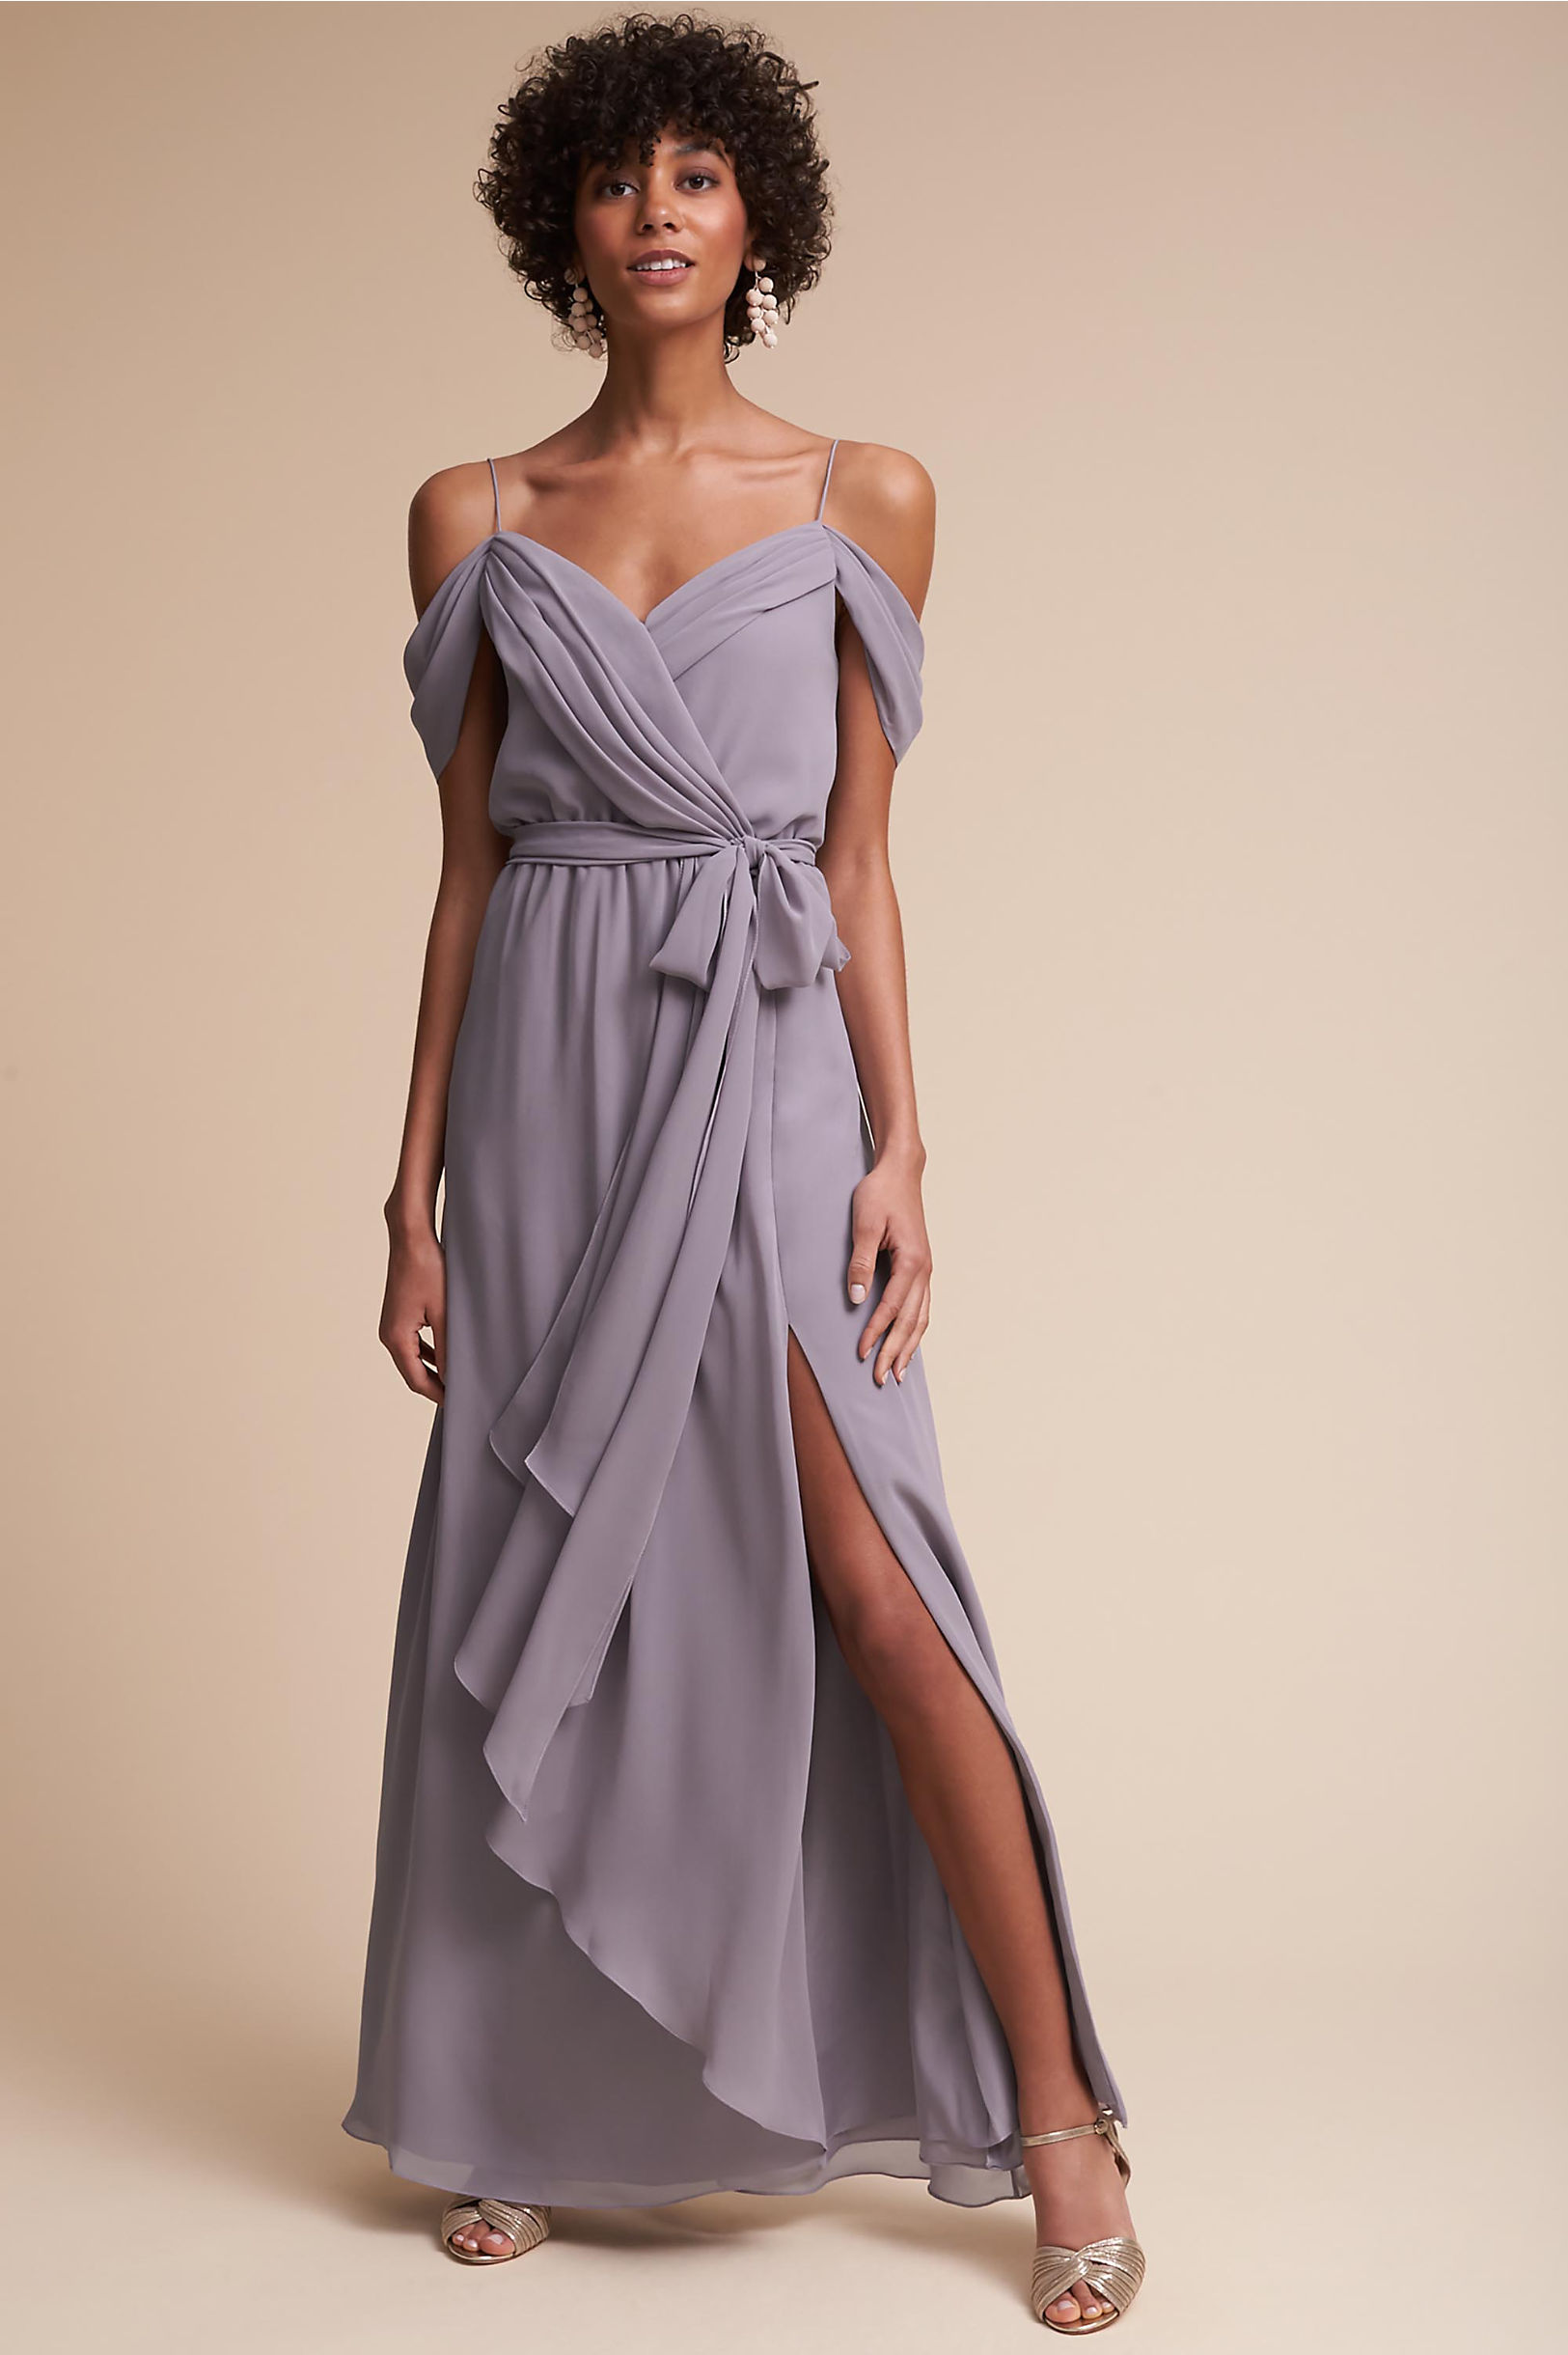 Kane Dress Victorian in Sale | BHLDN